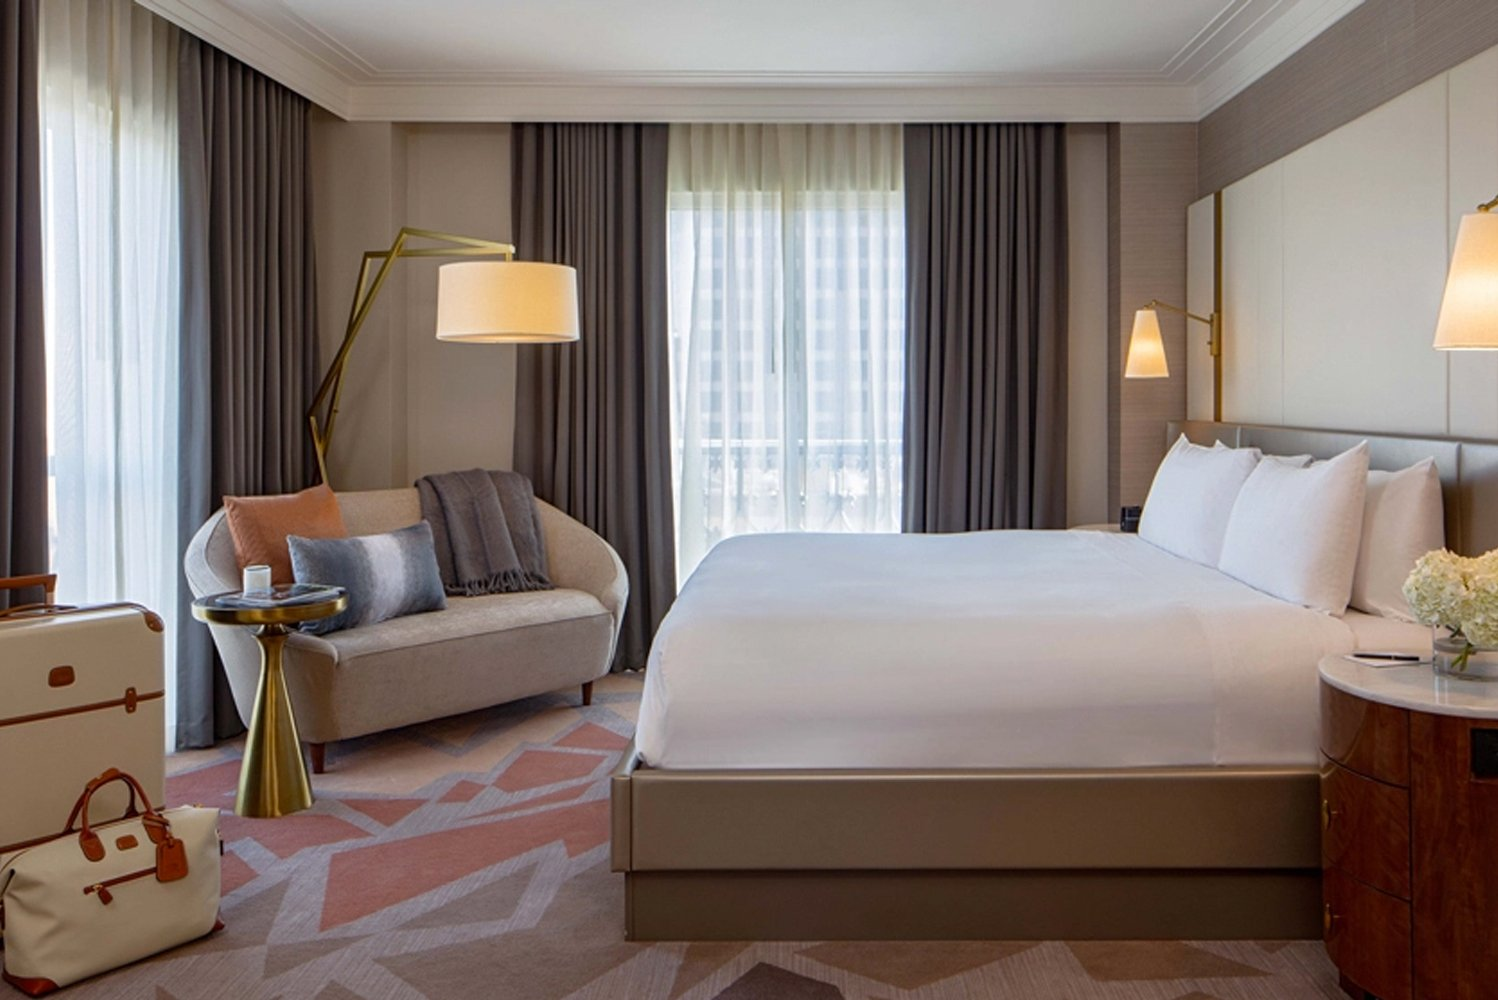 The 186 guestrooms and 40 suites pay homage to the vision of Caroline Rose Hunt and the original architect and Pritzker Prize-winner, Philip Johnson.